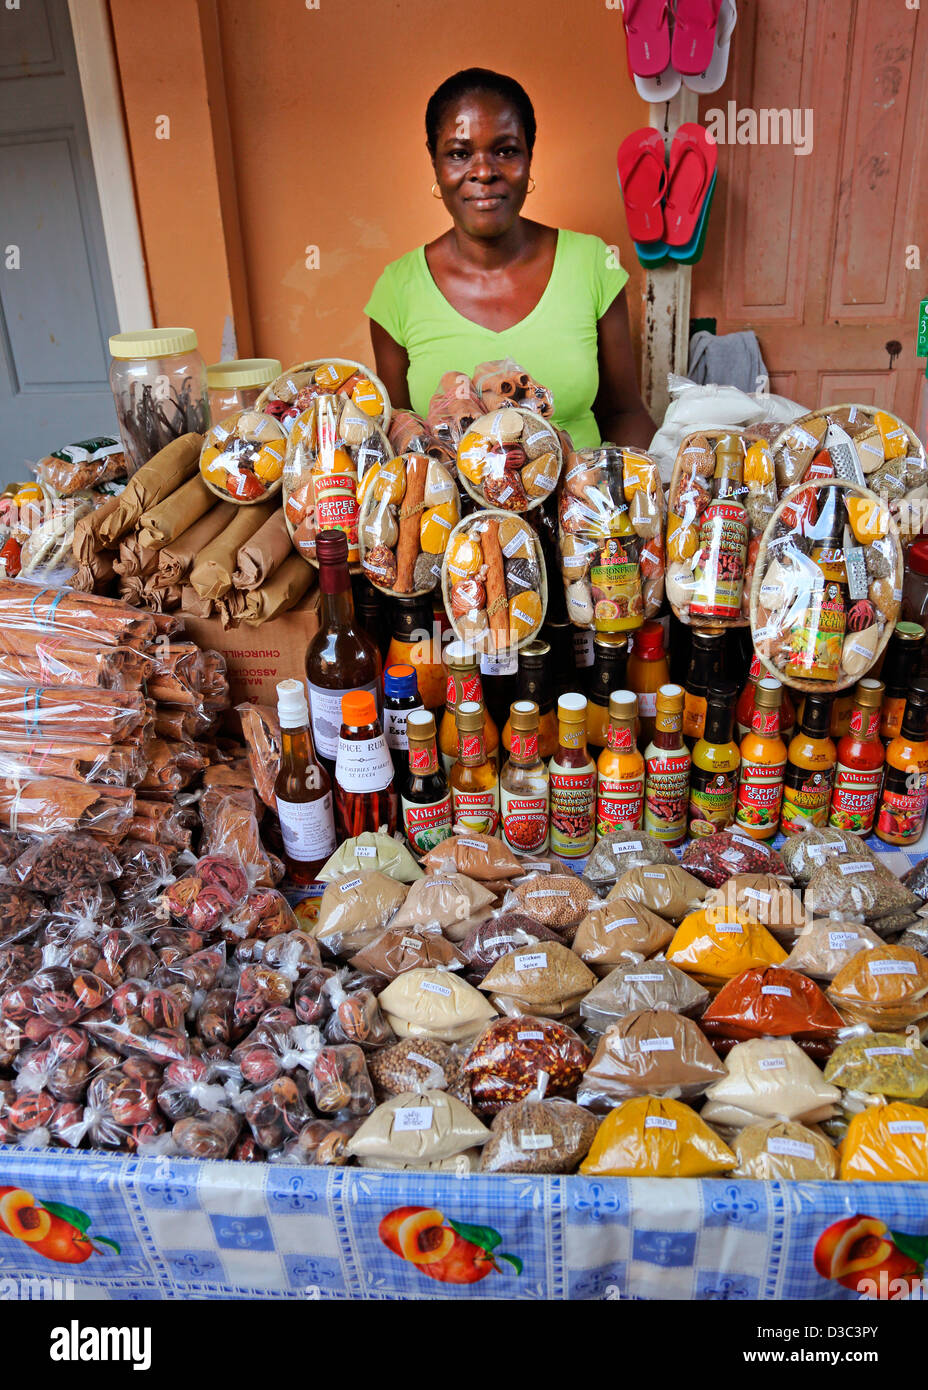 SPICE AND PRODUCE STALL,CASTRIES CENTRAL MARKET,ST.LUCIA - Stock Image